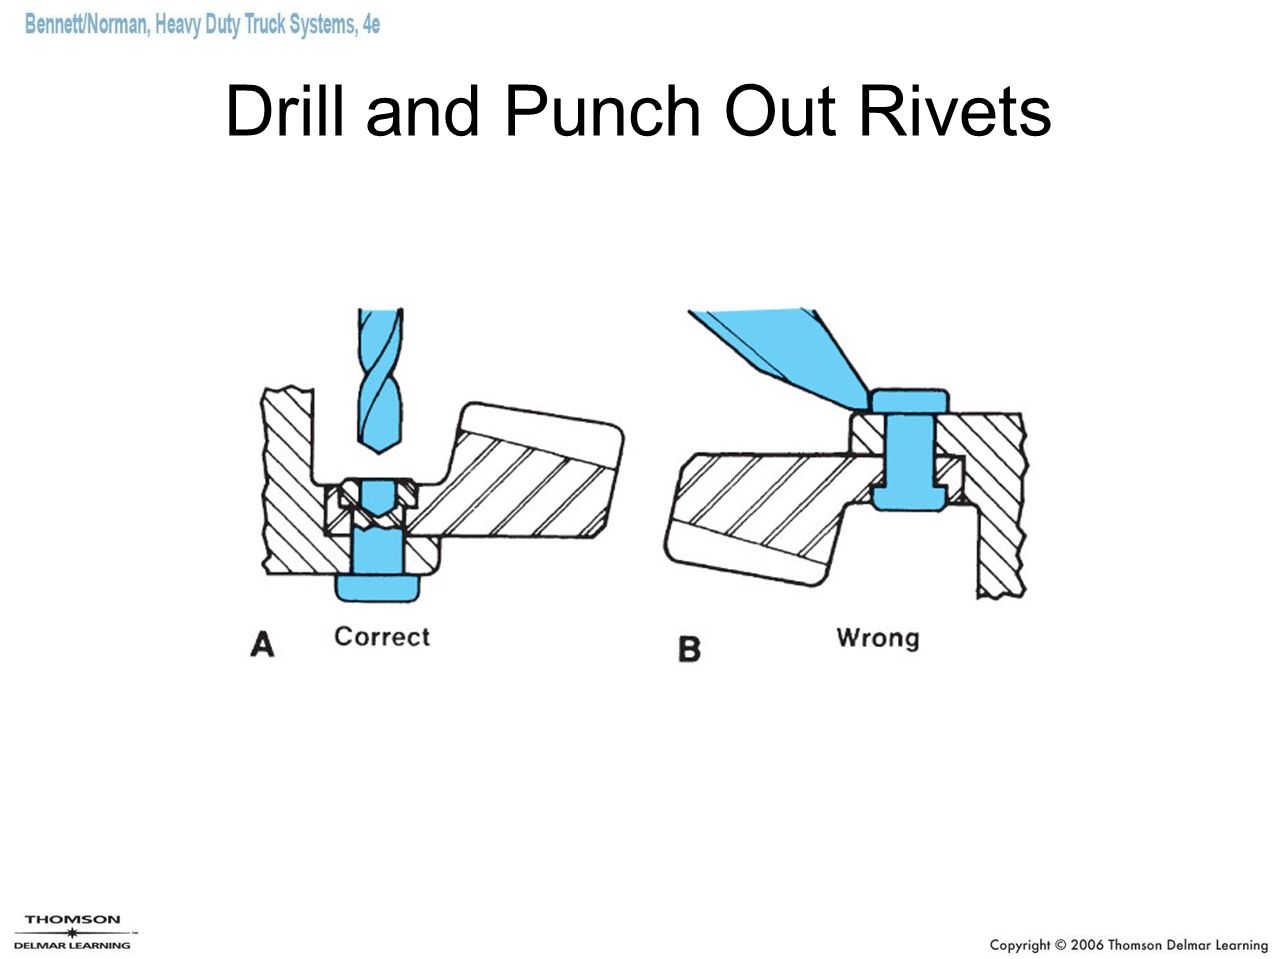 Drill and Punch Out Rivets